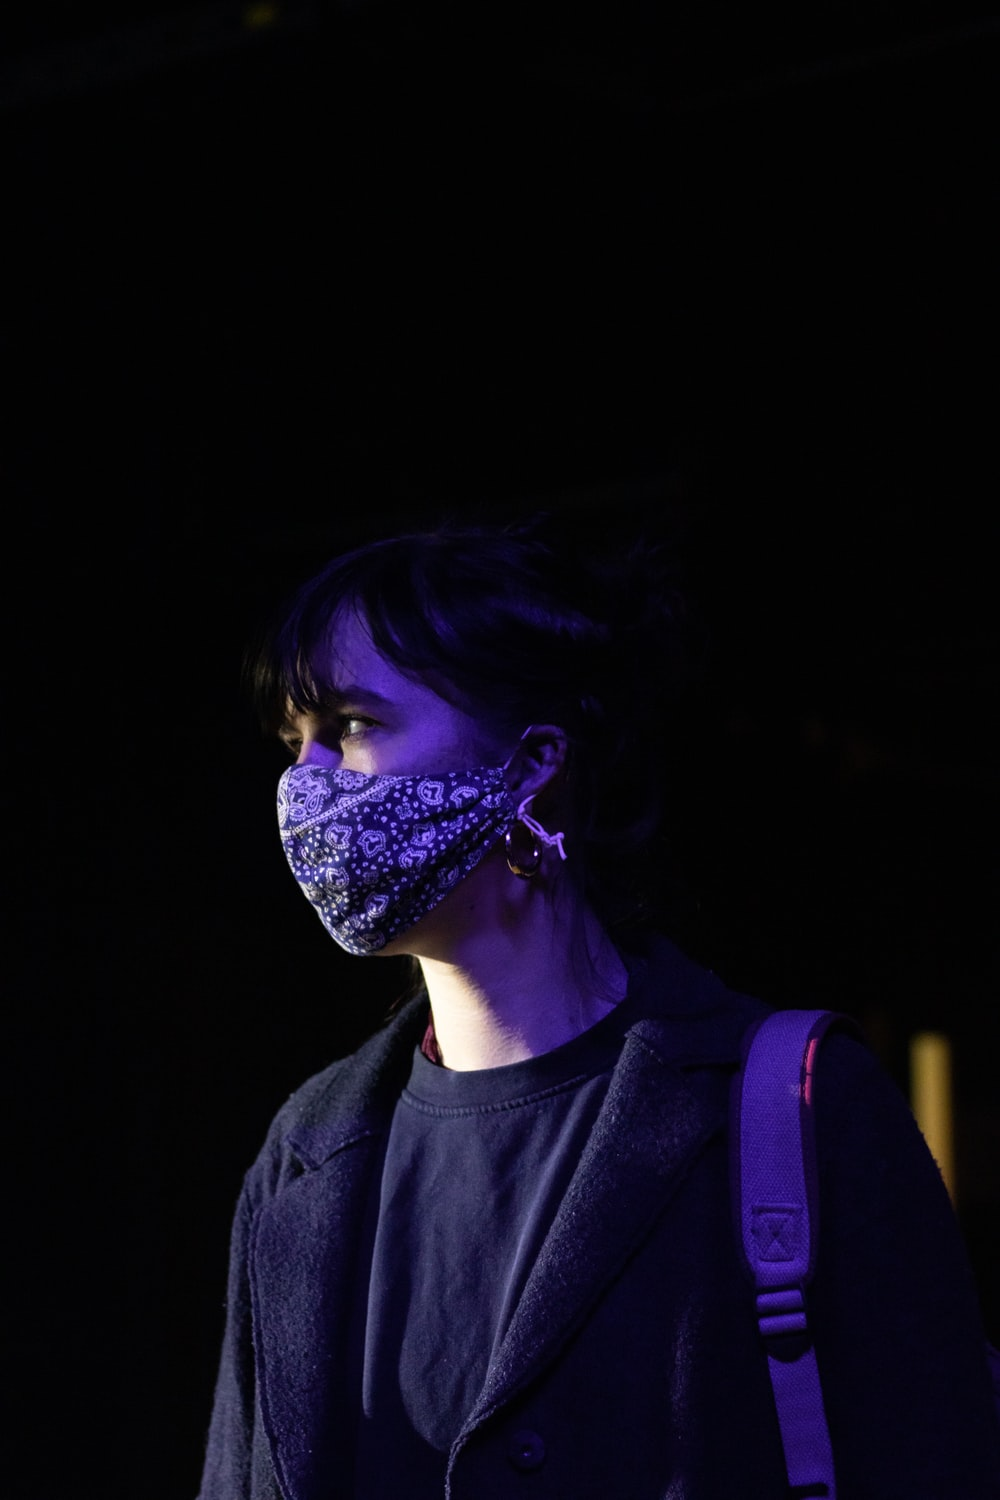 woman in black crew neck shirt with purple and blue face paint